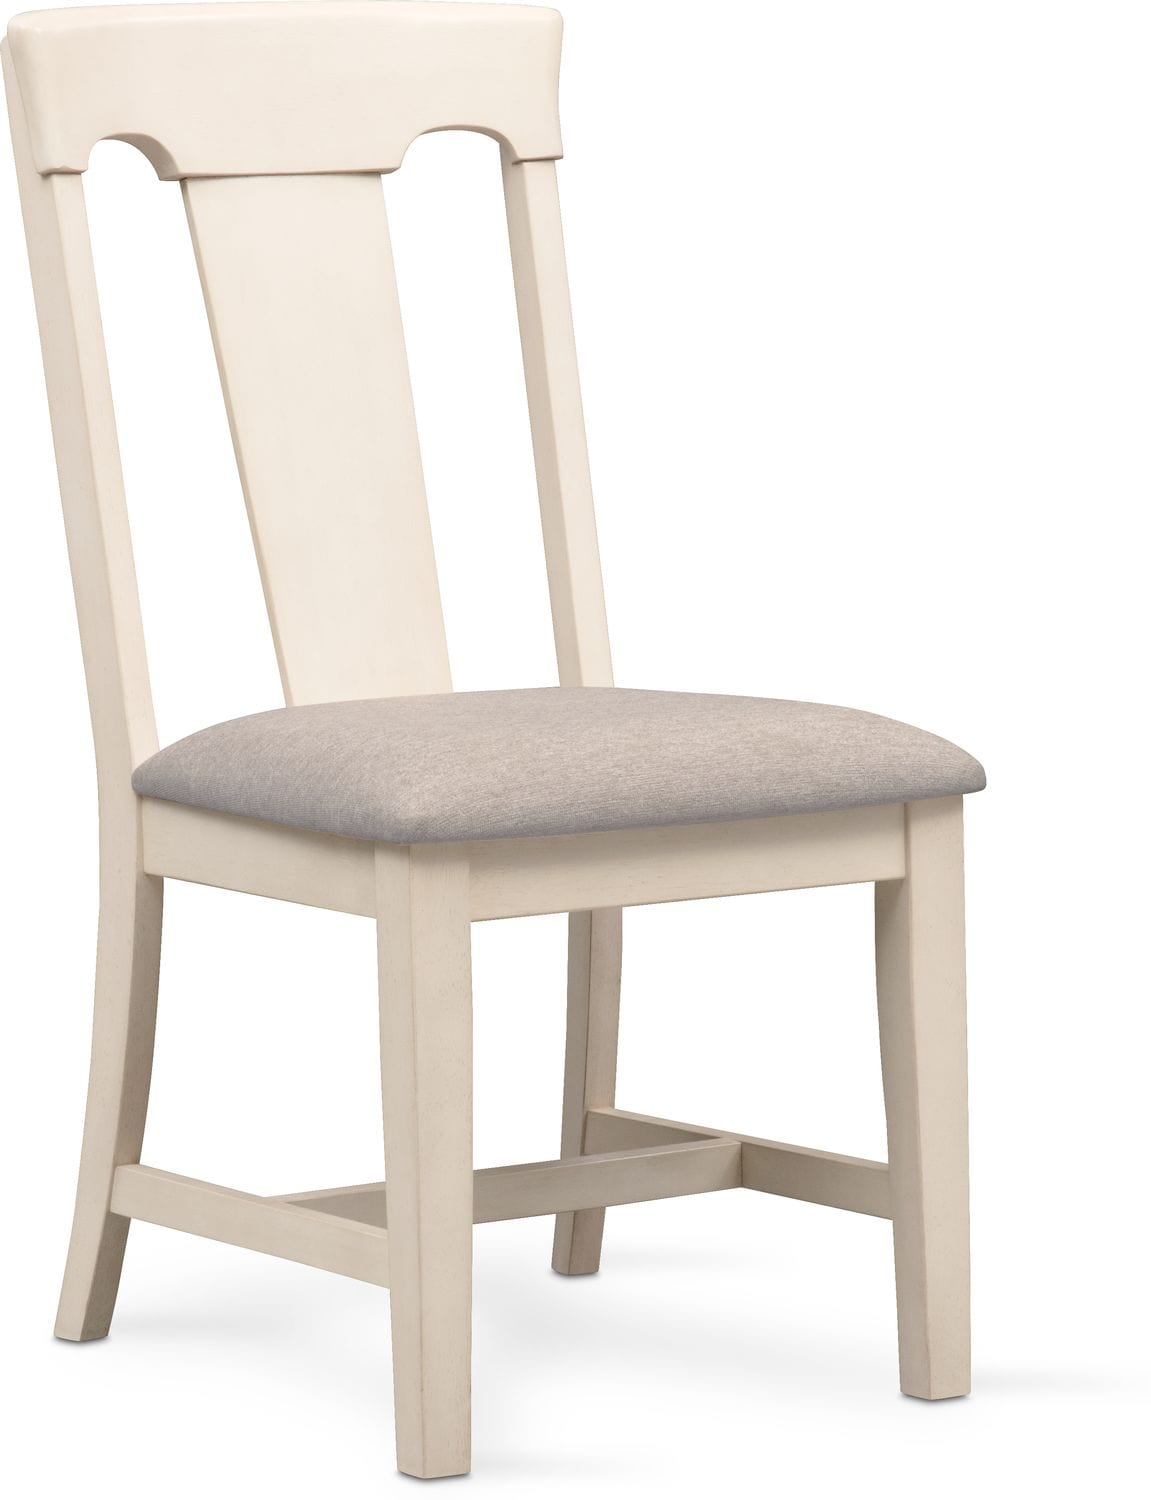 Dining Room Furniture - Adler Dining Chair